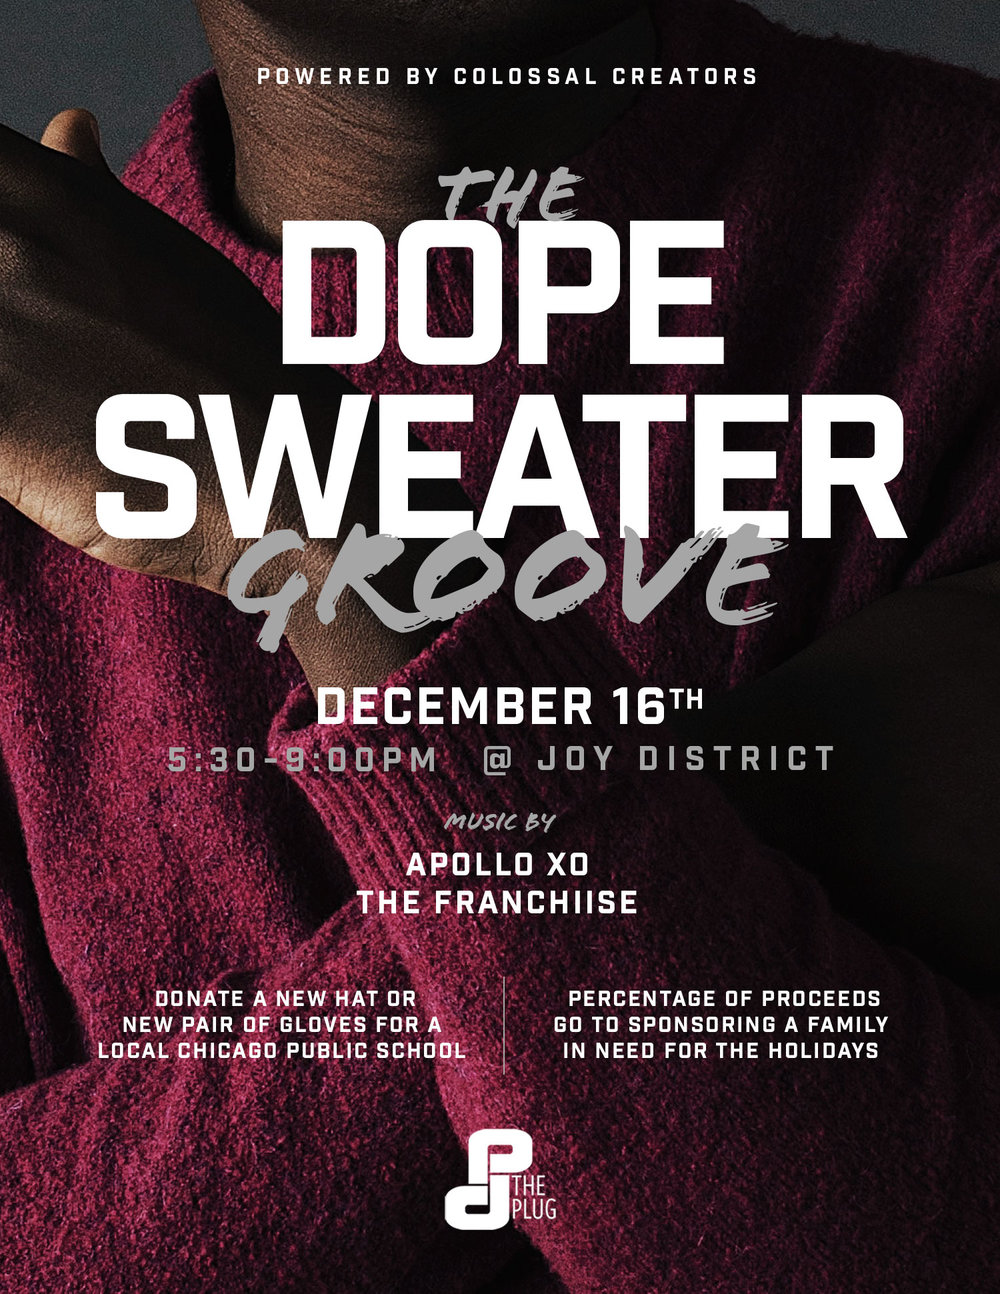 Dope-Sweater-Groove-Flyer-2017-V7-A.jpg